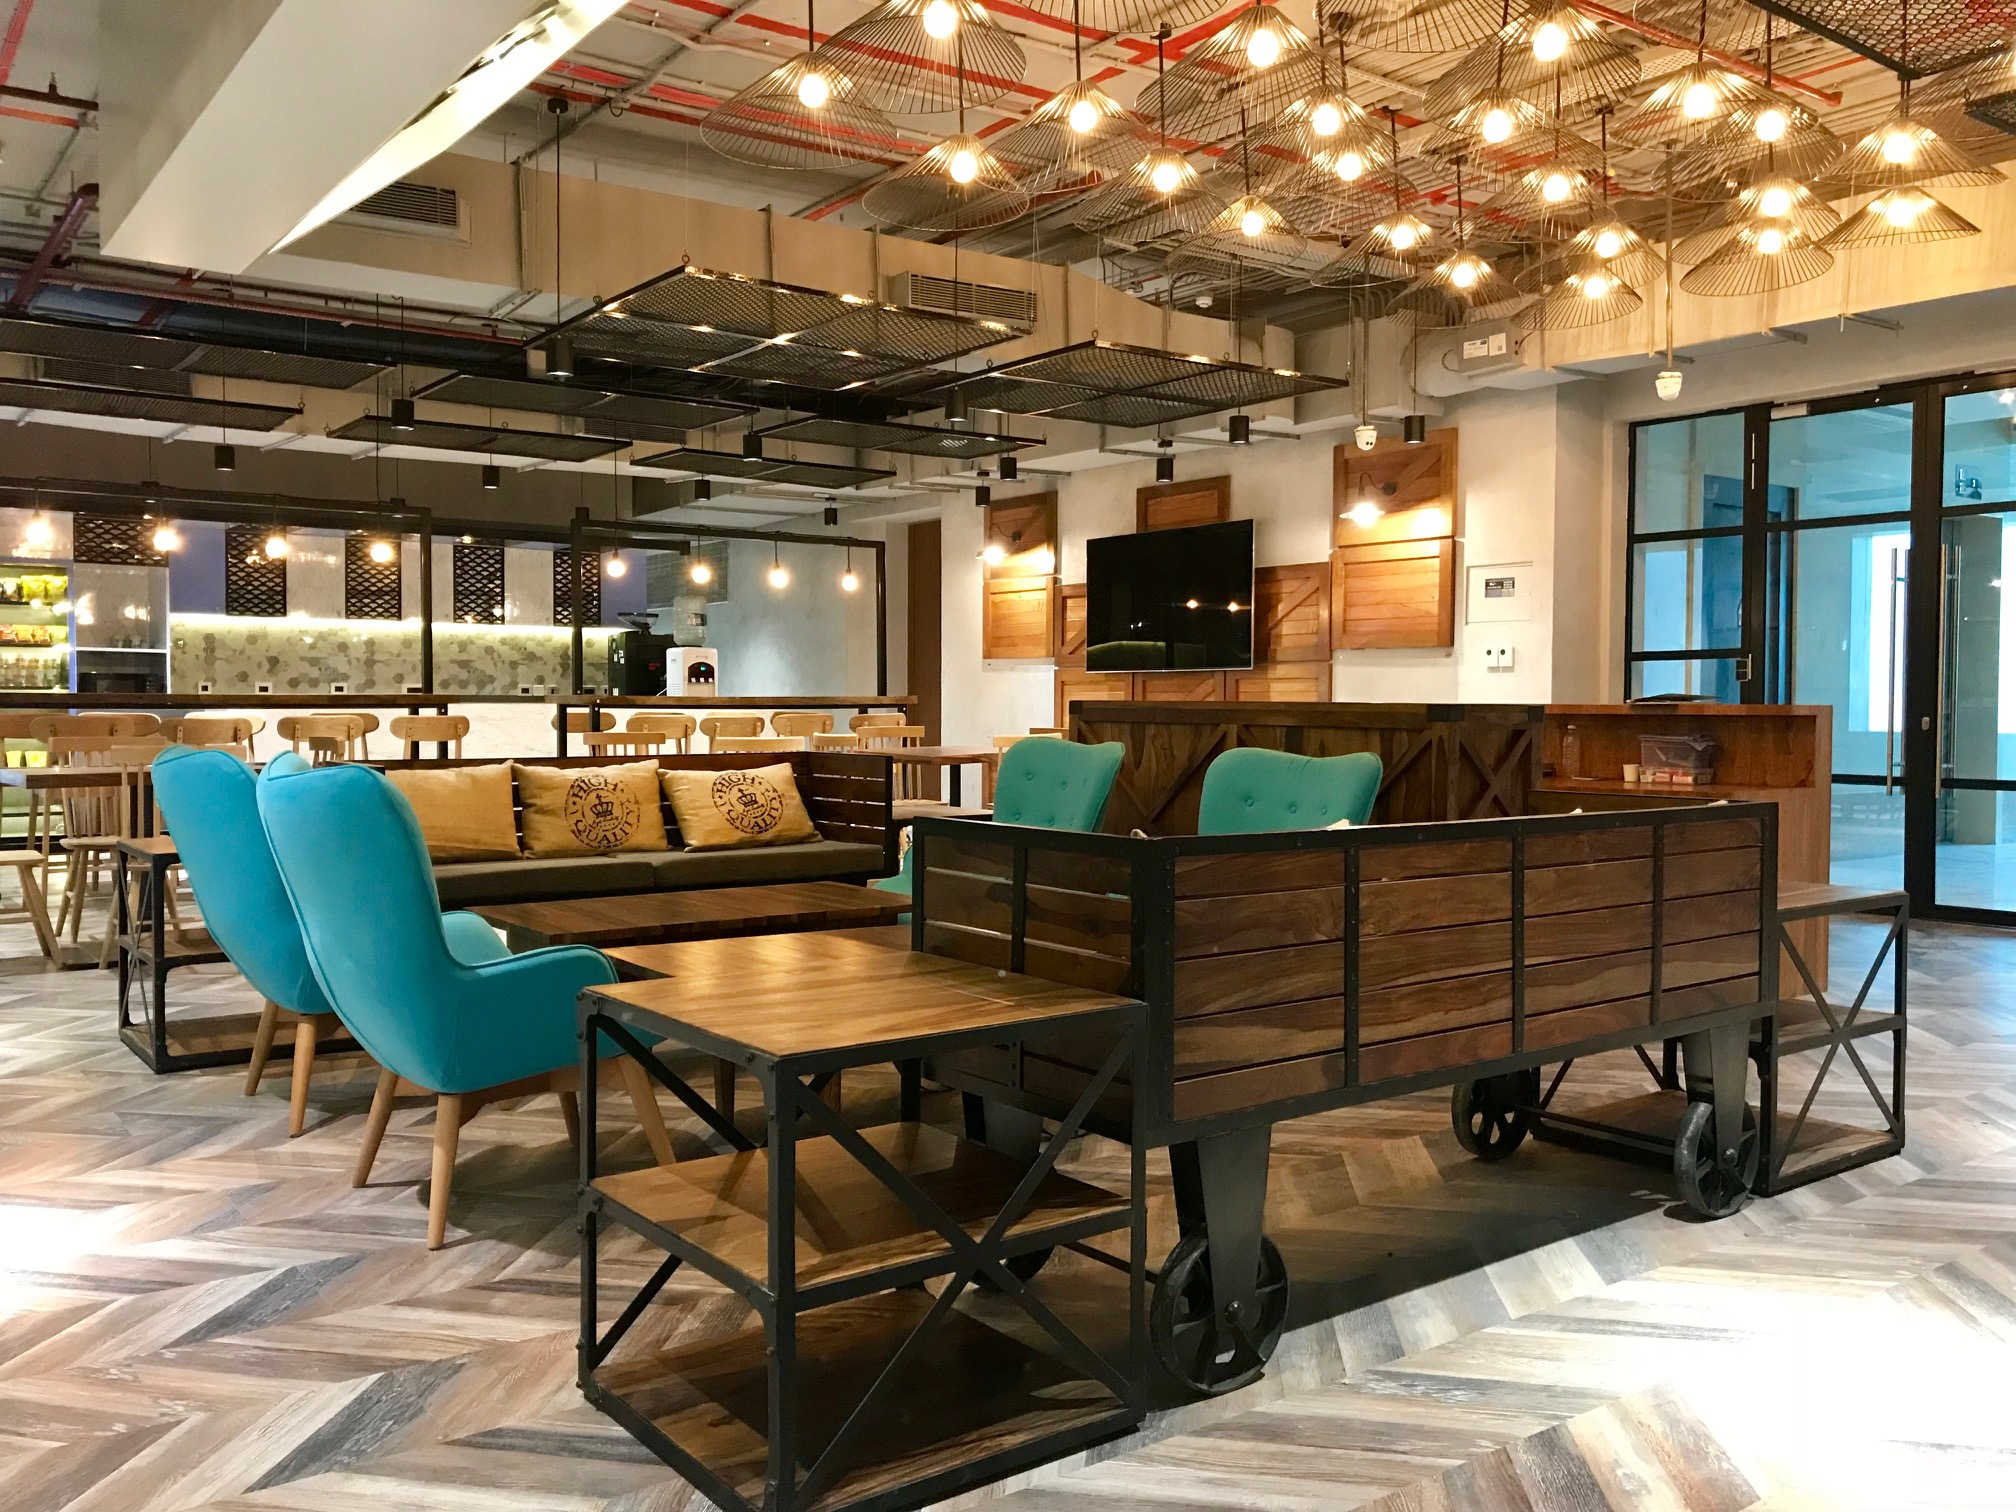 This Mumbai 'Awfis' is a vibrant co-working space for millennials